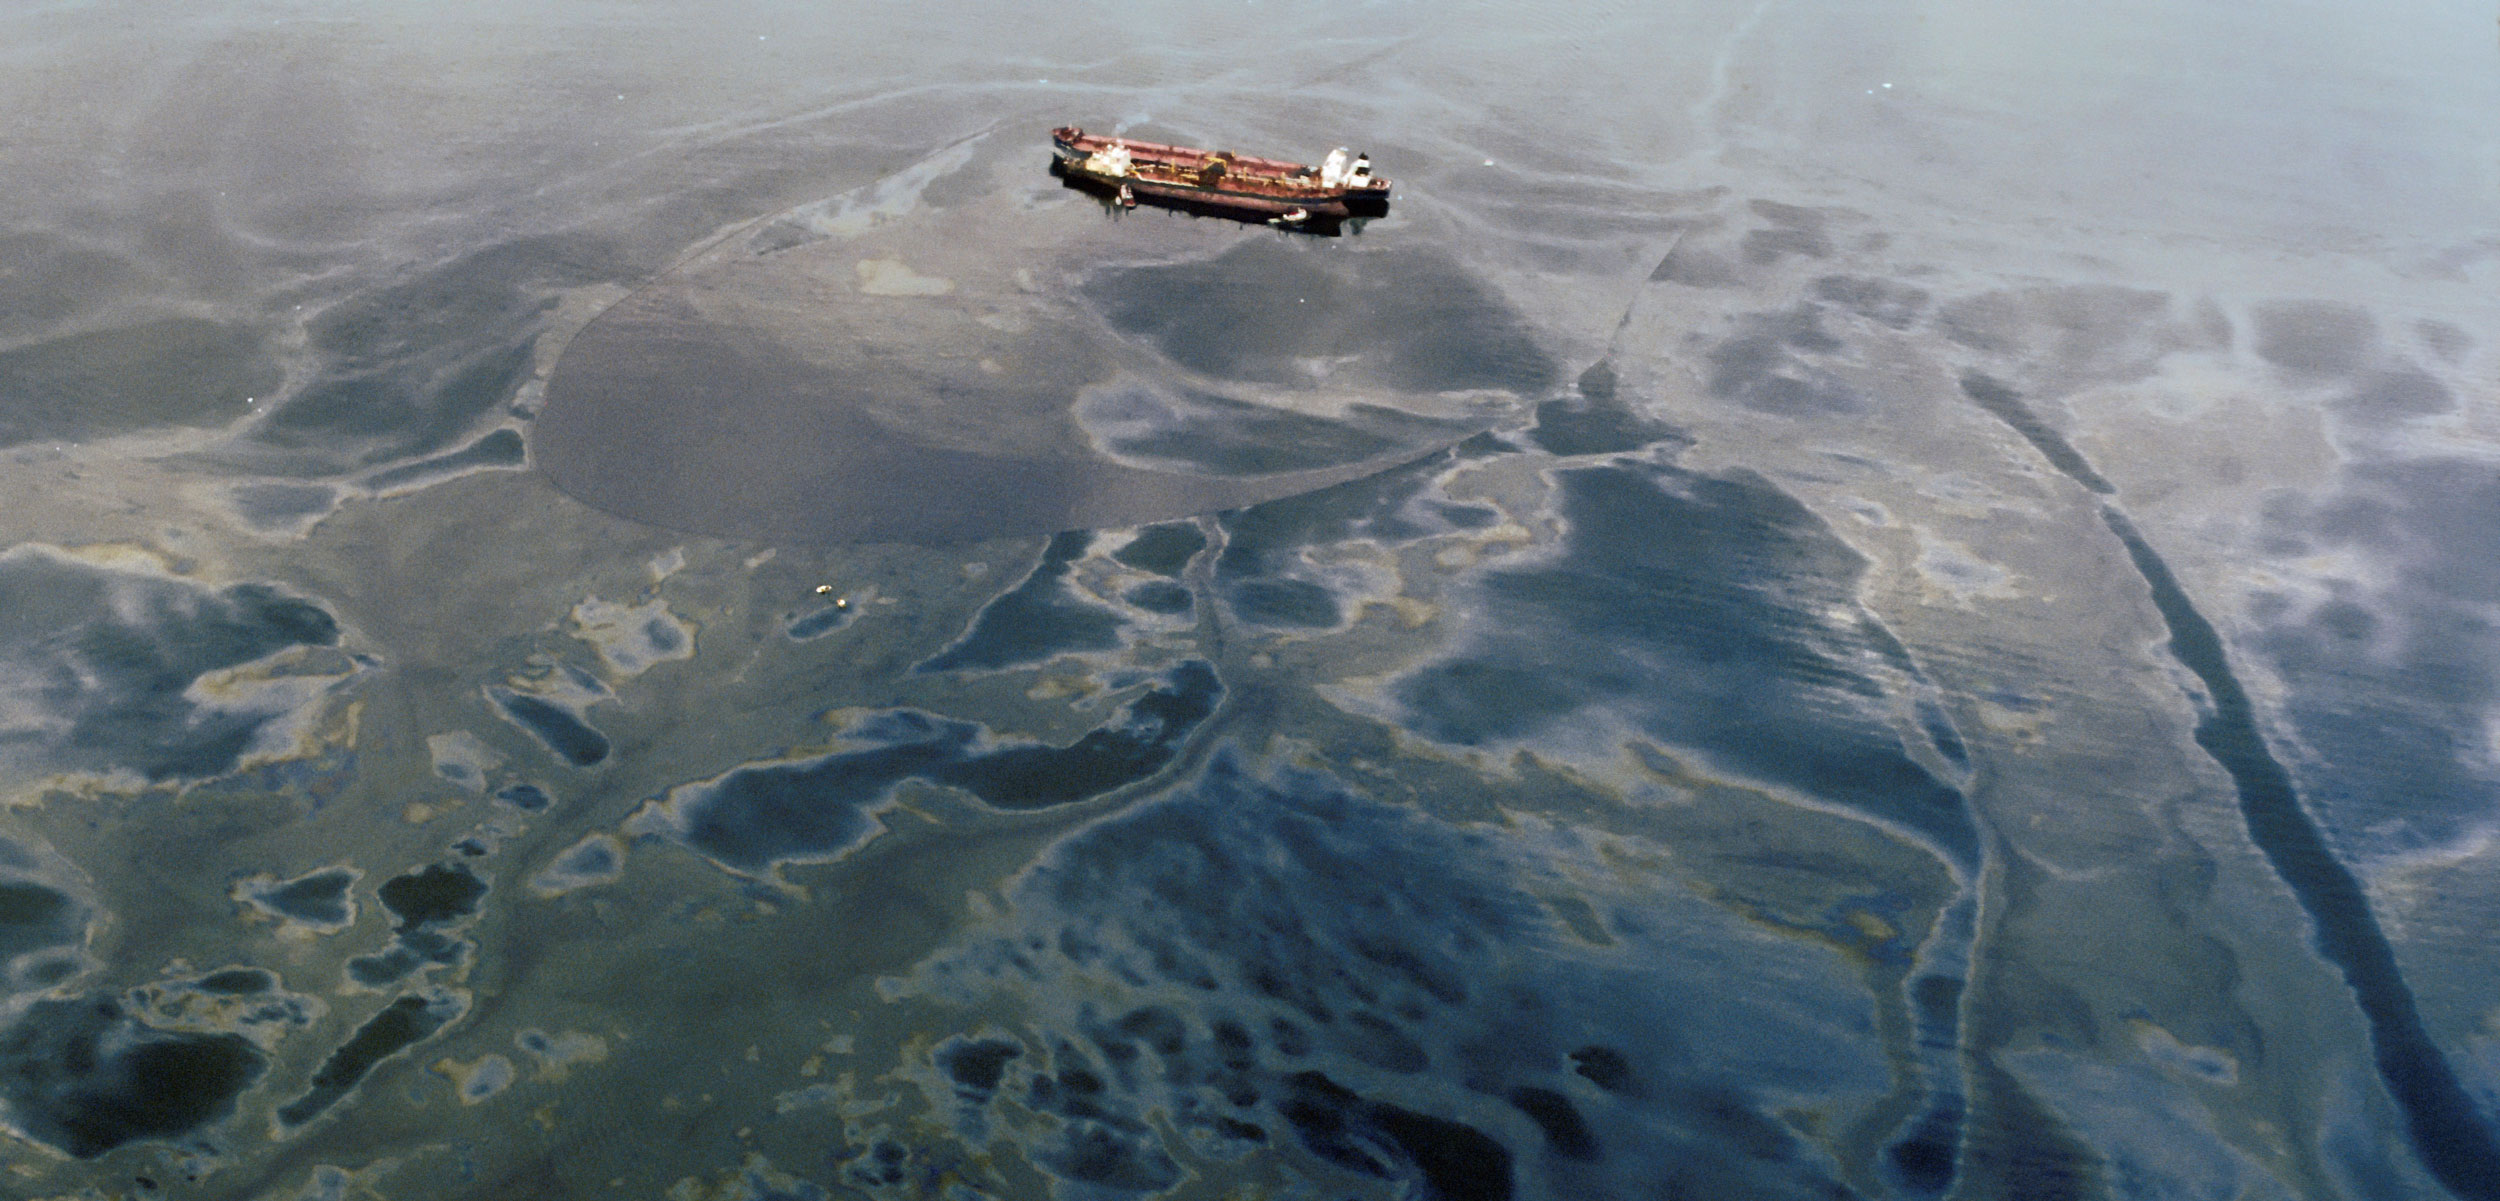 aerial photo of the Exxon Valdez oil spill